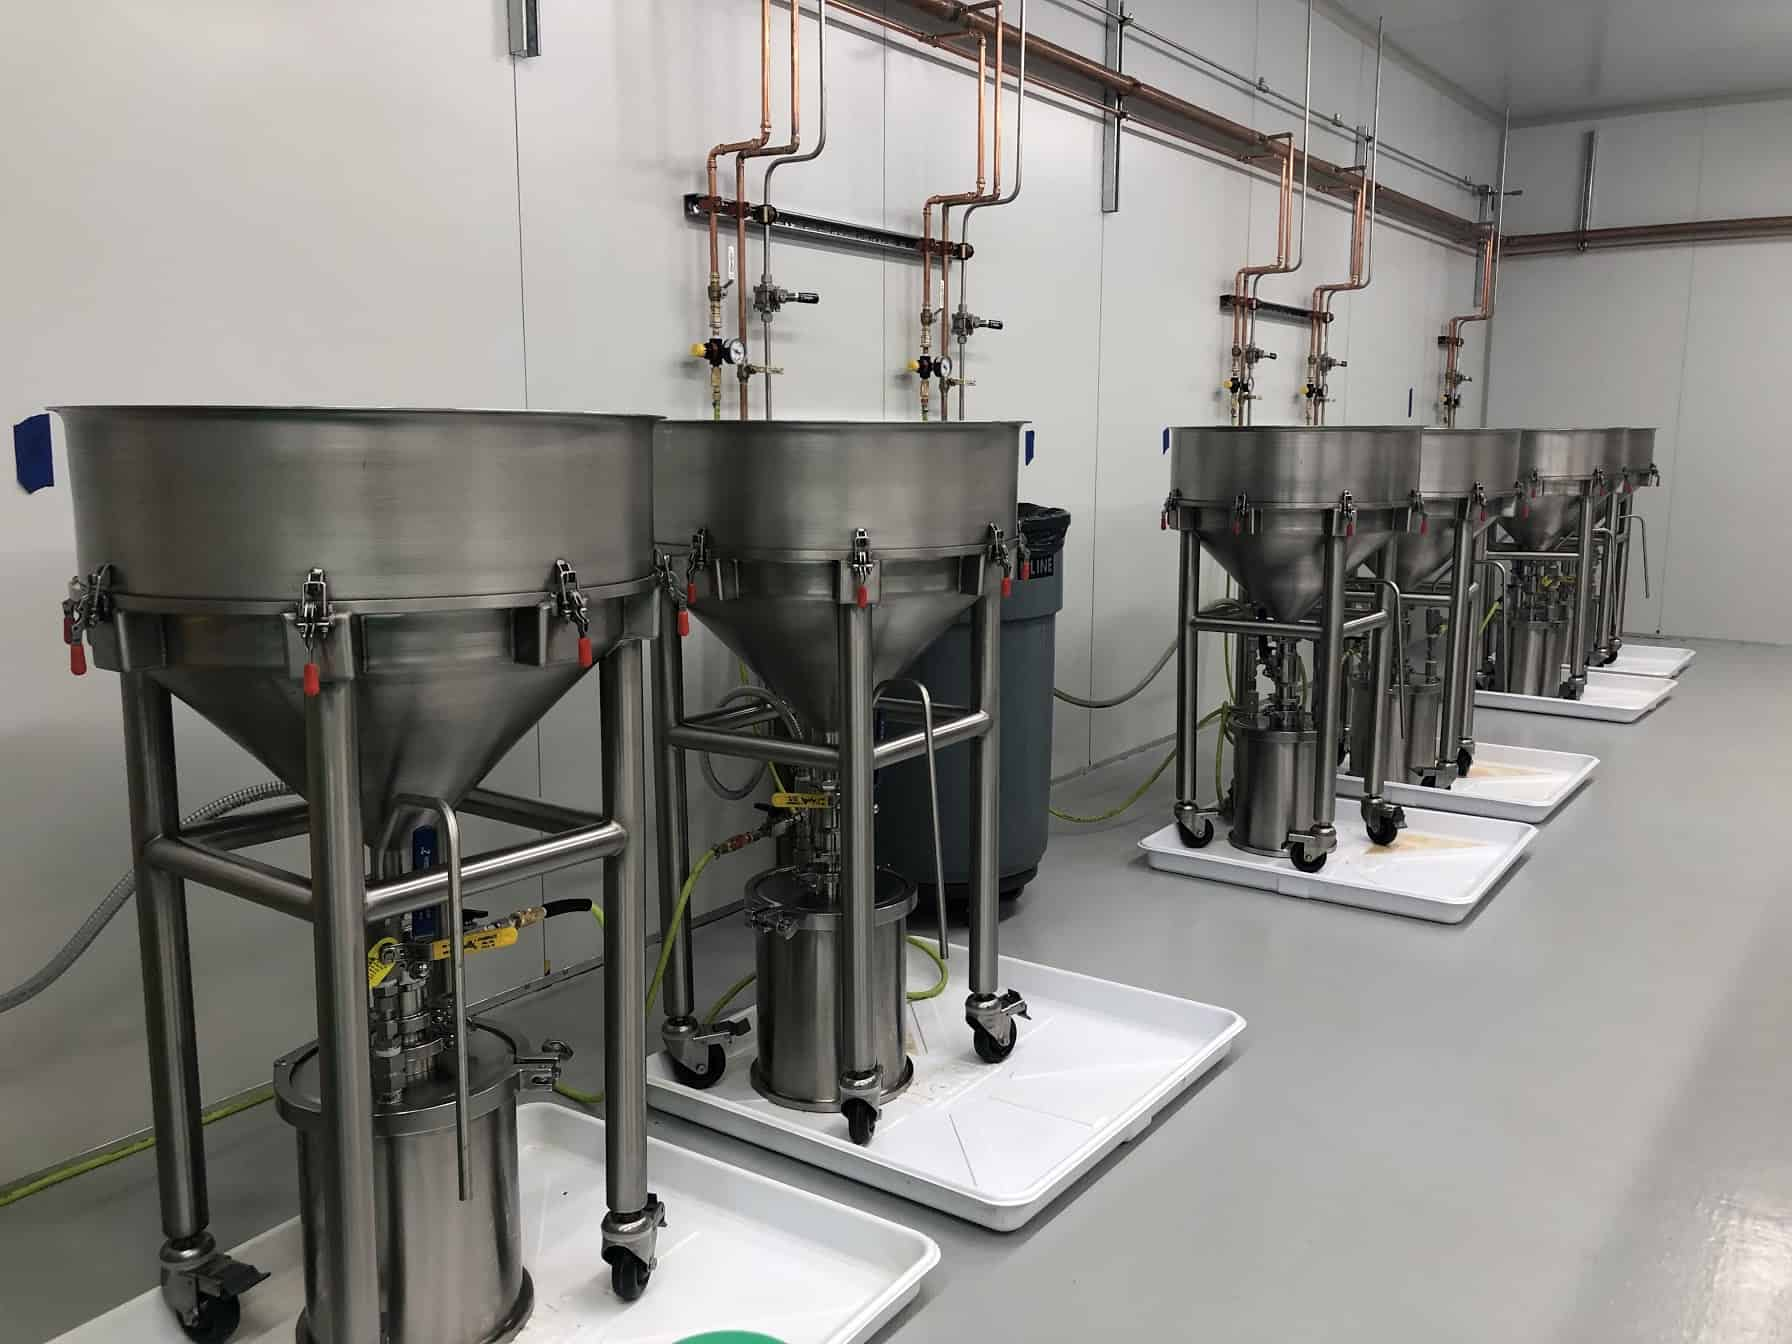 DrainDroyds in Winterize Wax Filtration Room